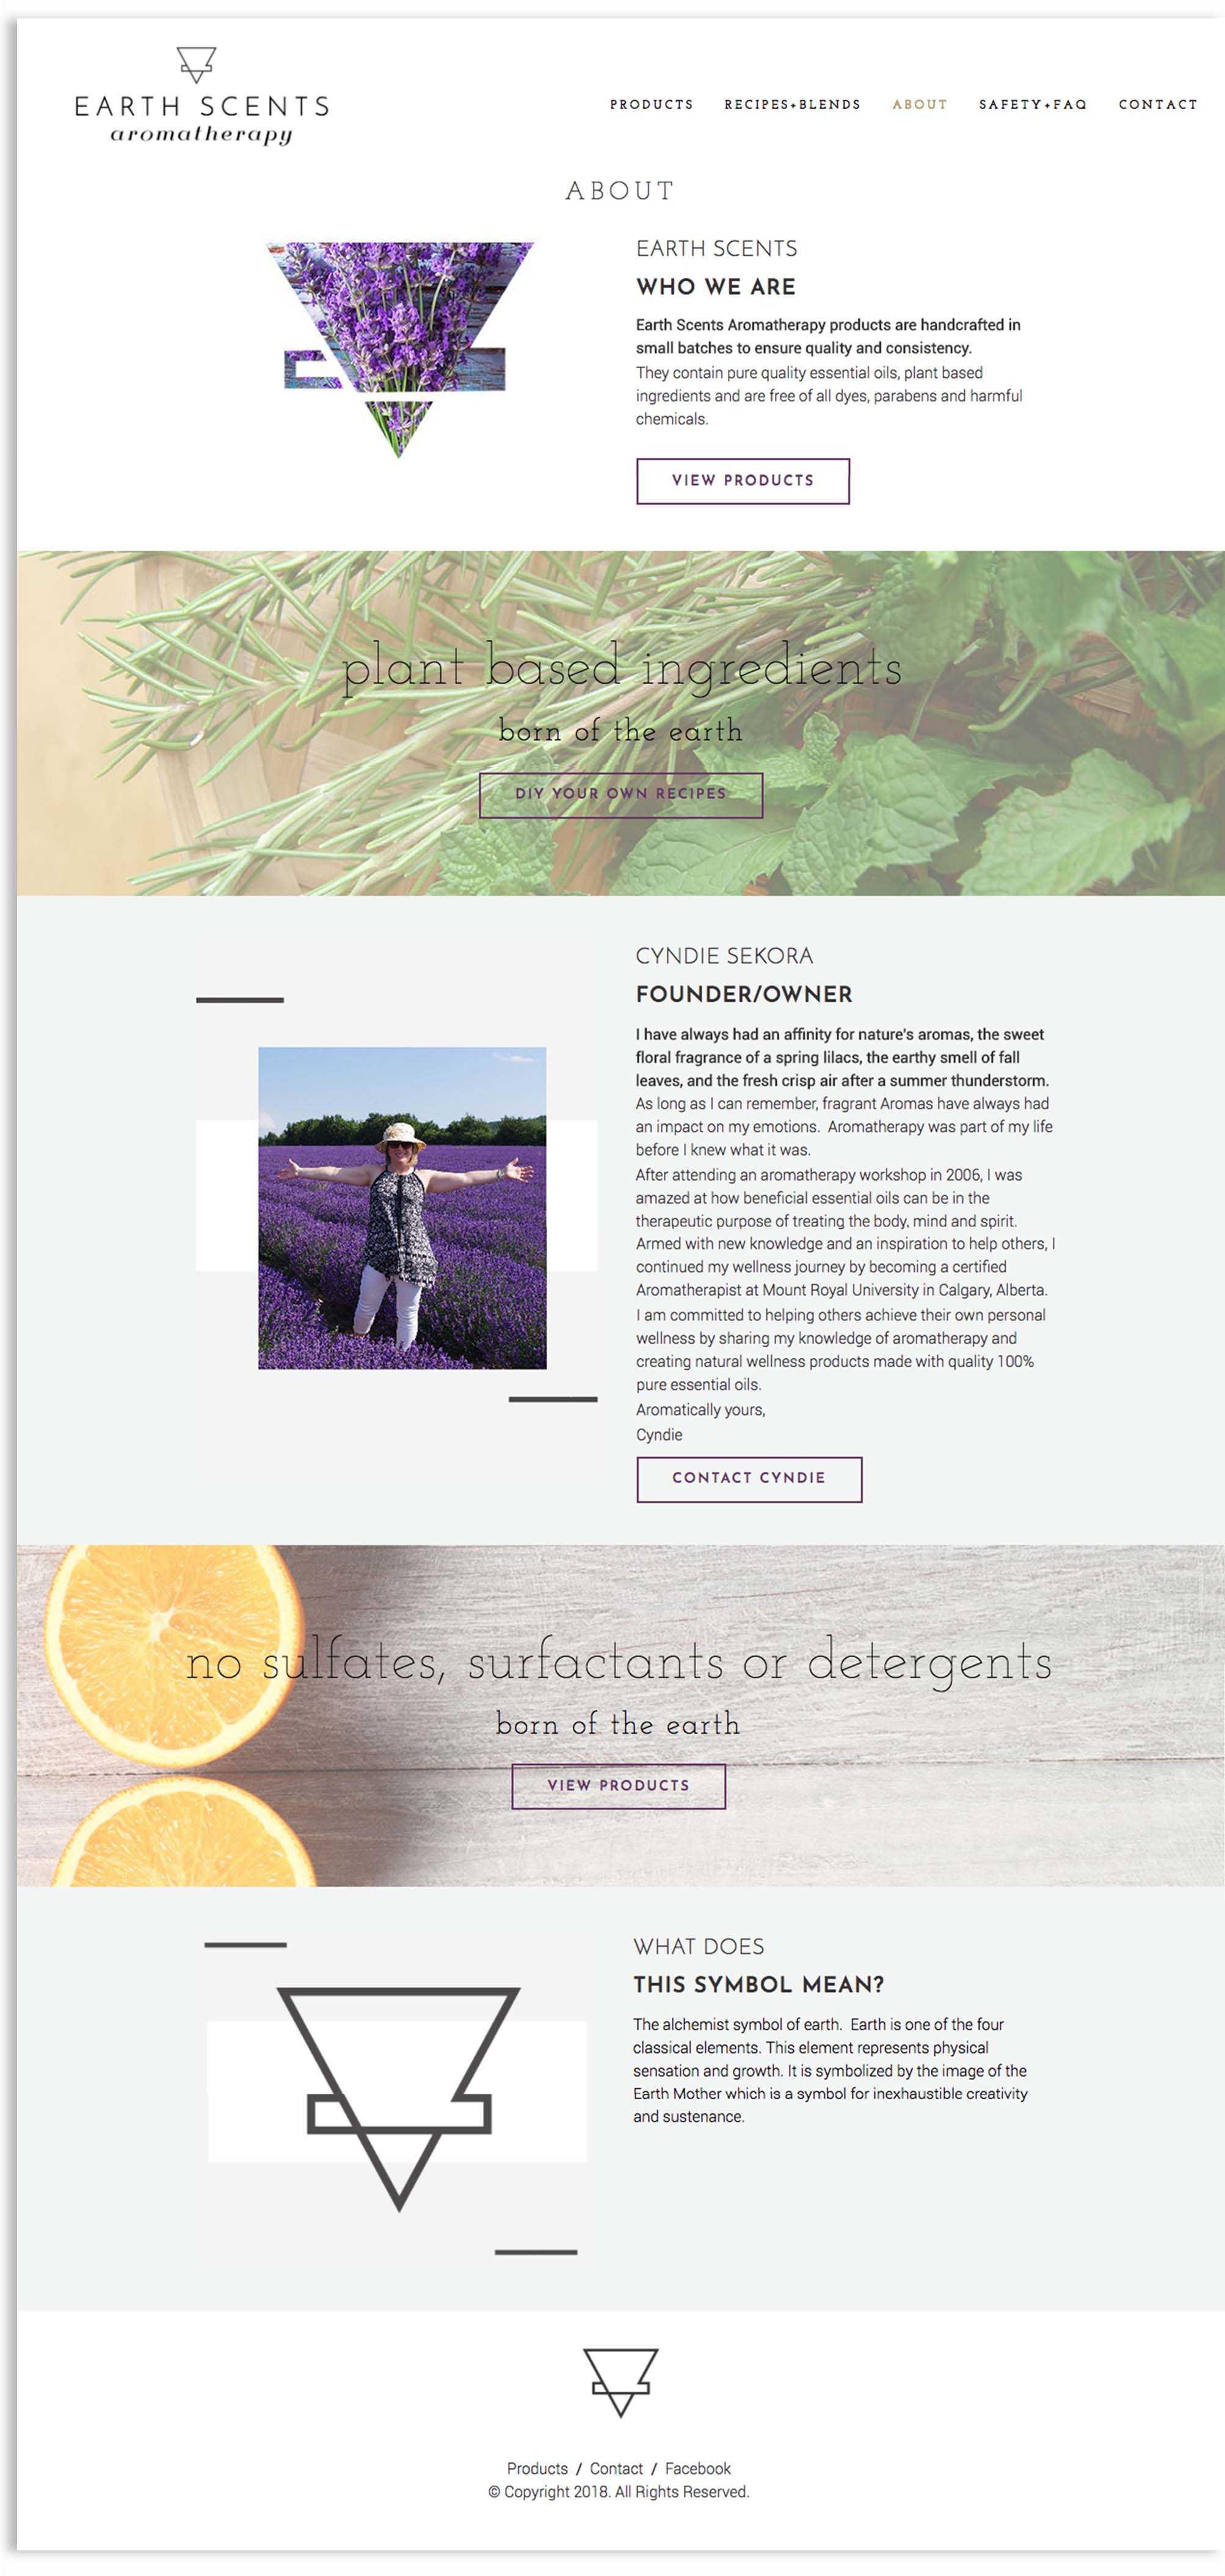 EarthScents_WebSite_About.jpg